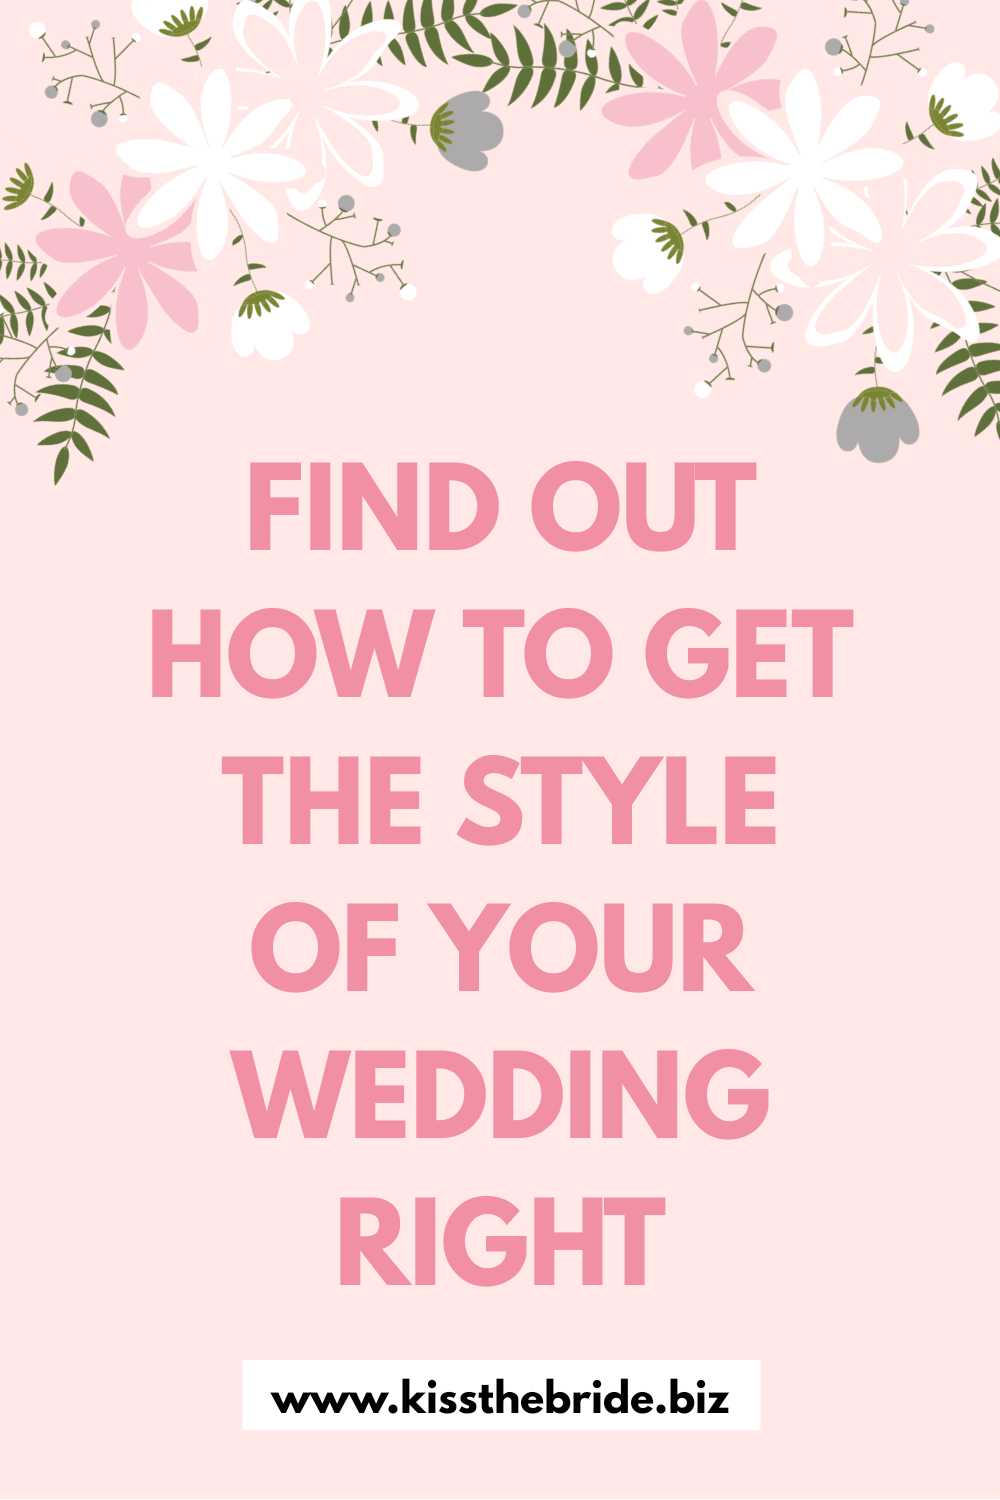 Wedding planning advice